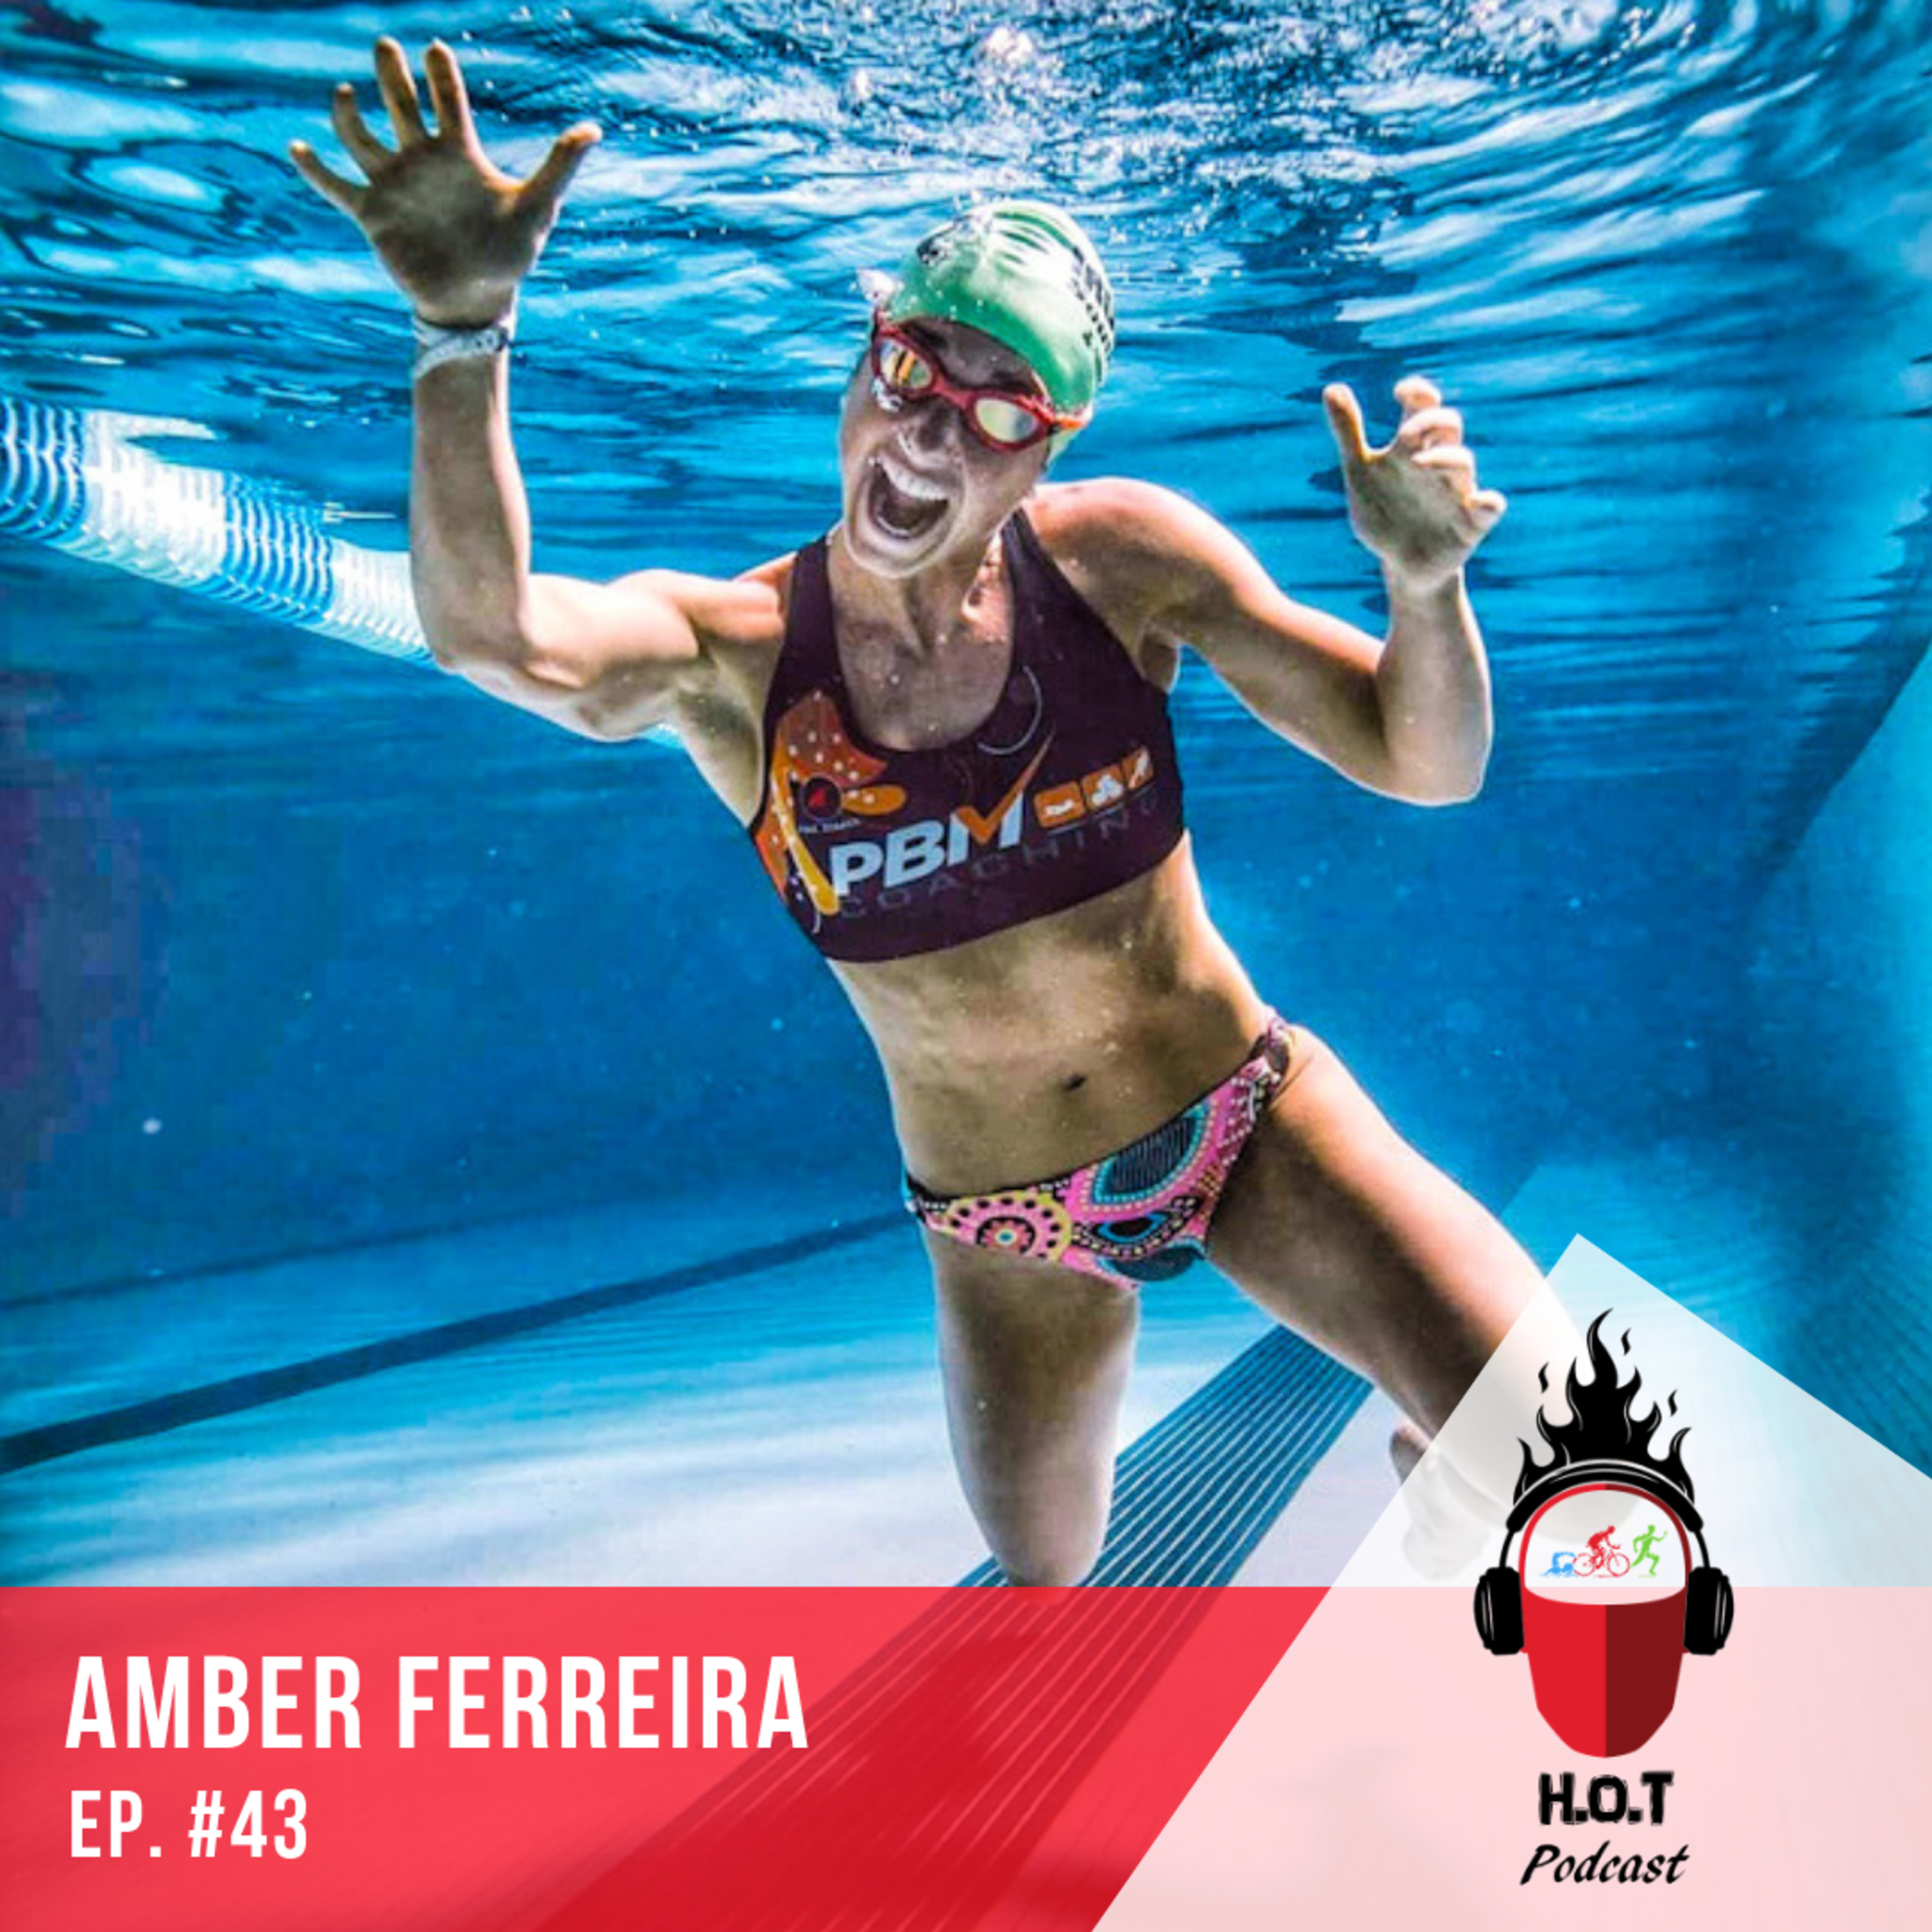 Ep. #43: Amber Ferreira | Race for the Love of Racing; Sport is Way More Than Just Winning & Losing